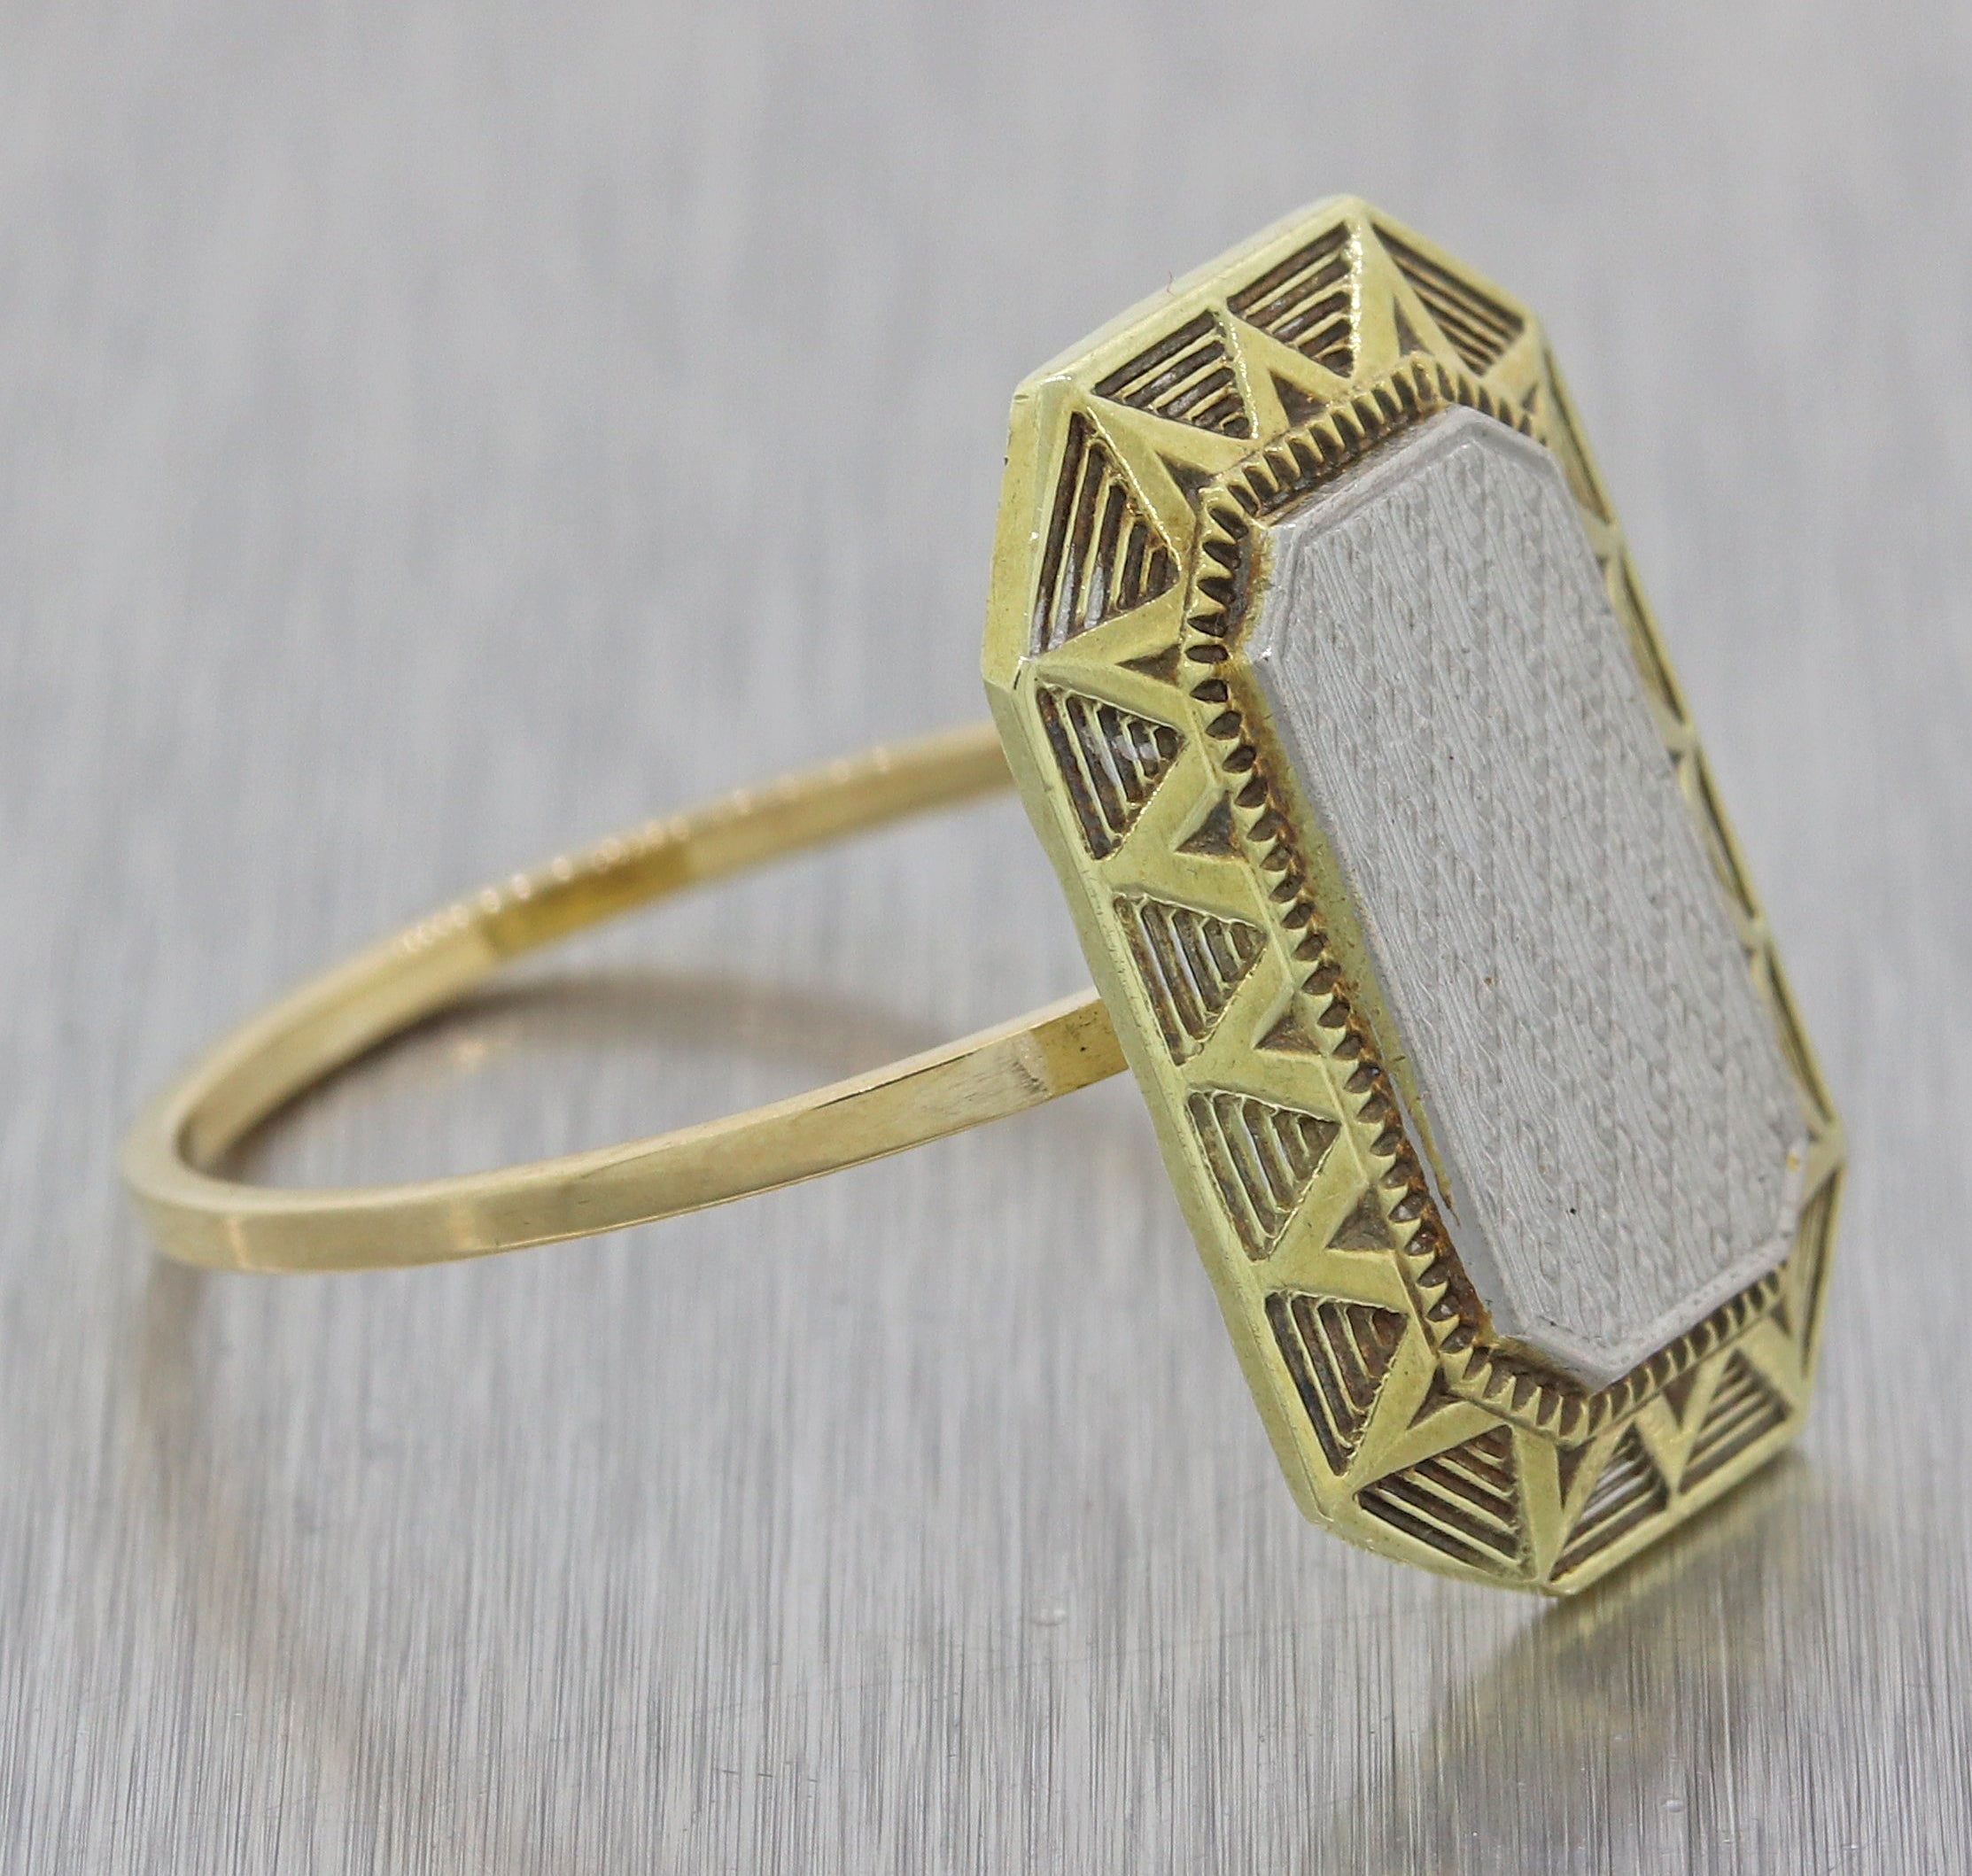 1930s Antique Art Deco Solid 14k Yellow Gold Platinum Shield Cocktail Ring F8